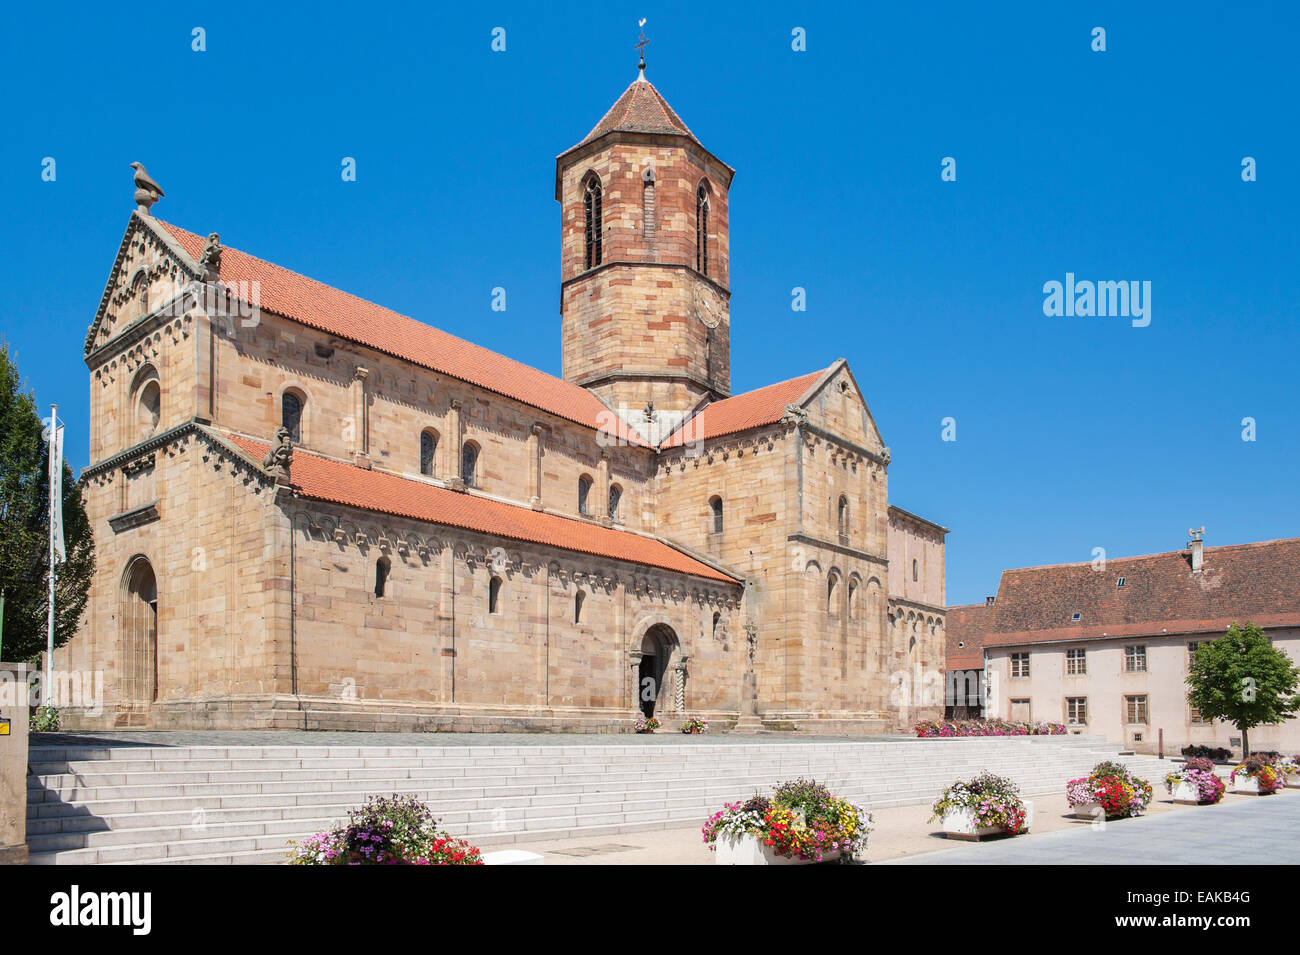 Église Saints-Pierre-et-Paul or St. Peter and St. Paul's Church, Rosheim, Département Bas-Rhin, Alsace, - Stock Image